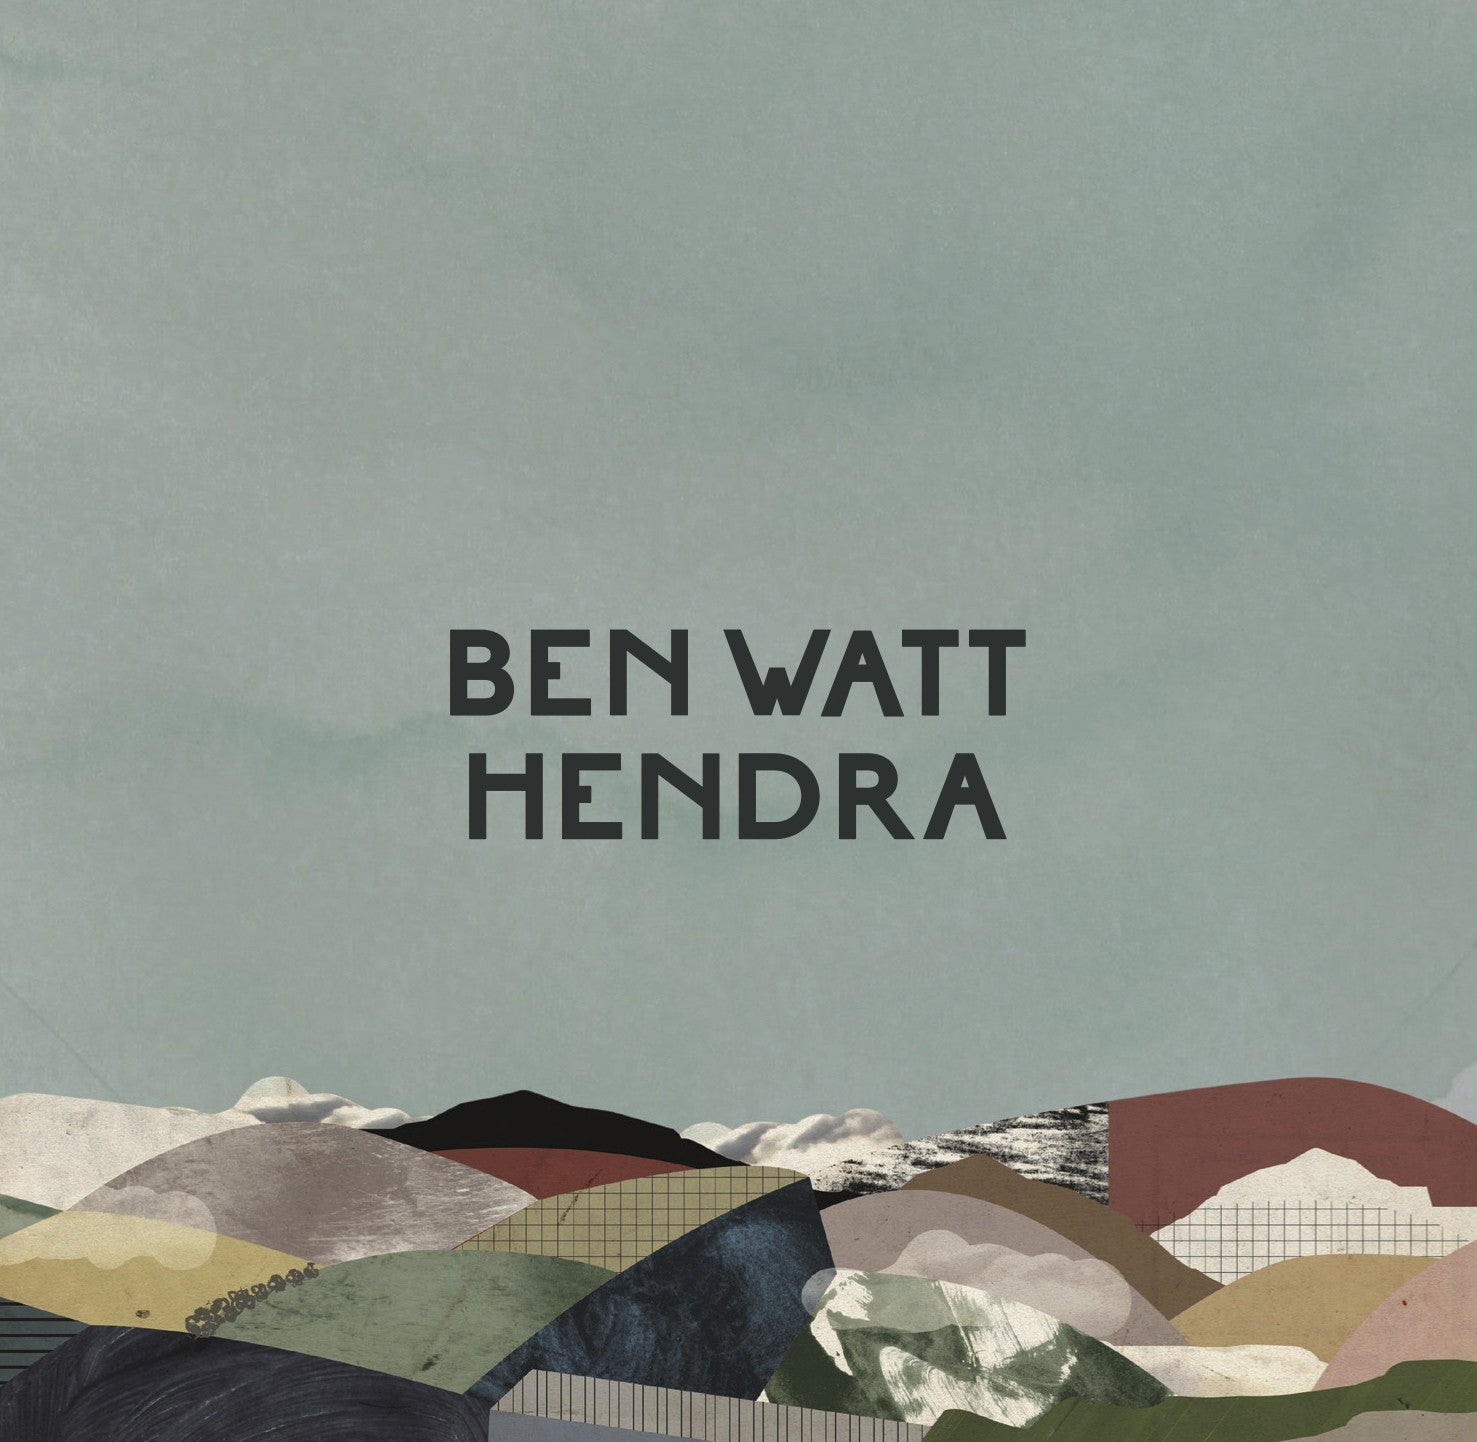 Ben Watt - Hendra (Original Limited Edition Promo) (CD)